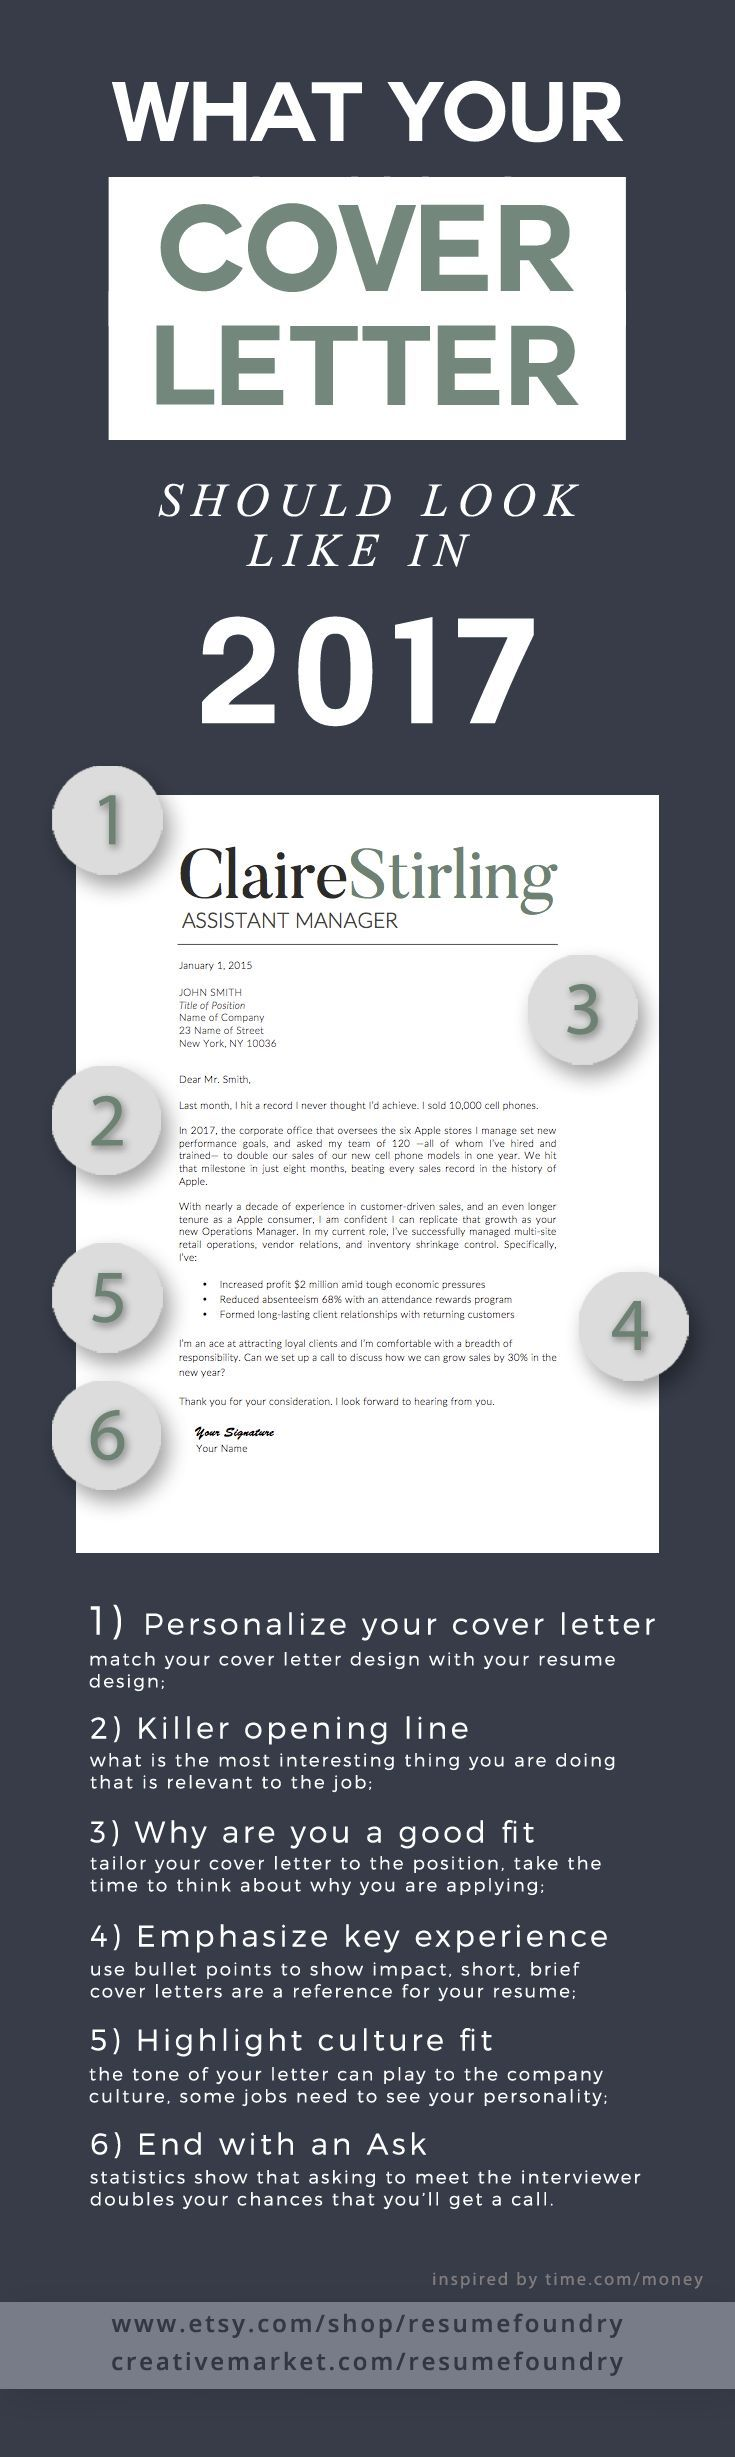 88 best Resume Writing images on Pinterest